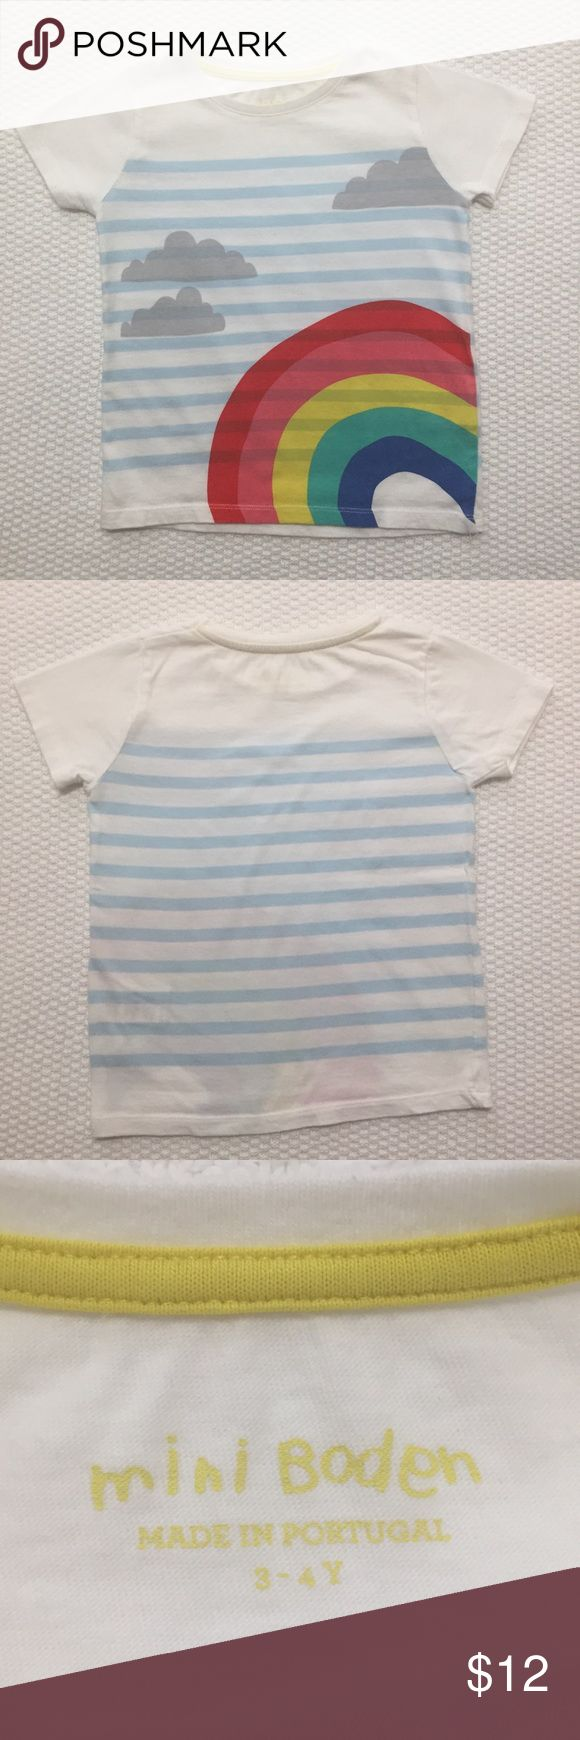 Mini Boden rainbow t shirt top size 3 4 🌈 Super cute and soft! 🌈 Striped t shirt from Mini Biden w pretty rainbow graphic. Very tiny spots on right shoulder see last photo.  ✨♻️✨ I offer a bundle discount and my Mommy said she is open to reasonable offers made through the MAKE OFFER button. 💞 Mini Boden Shirts & Tops Tees - Short Sleeve